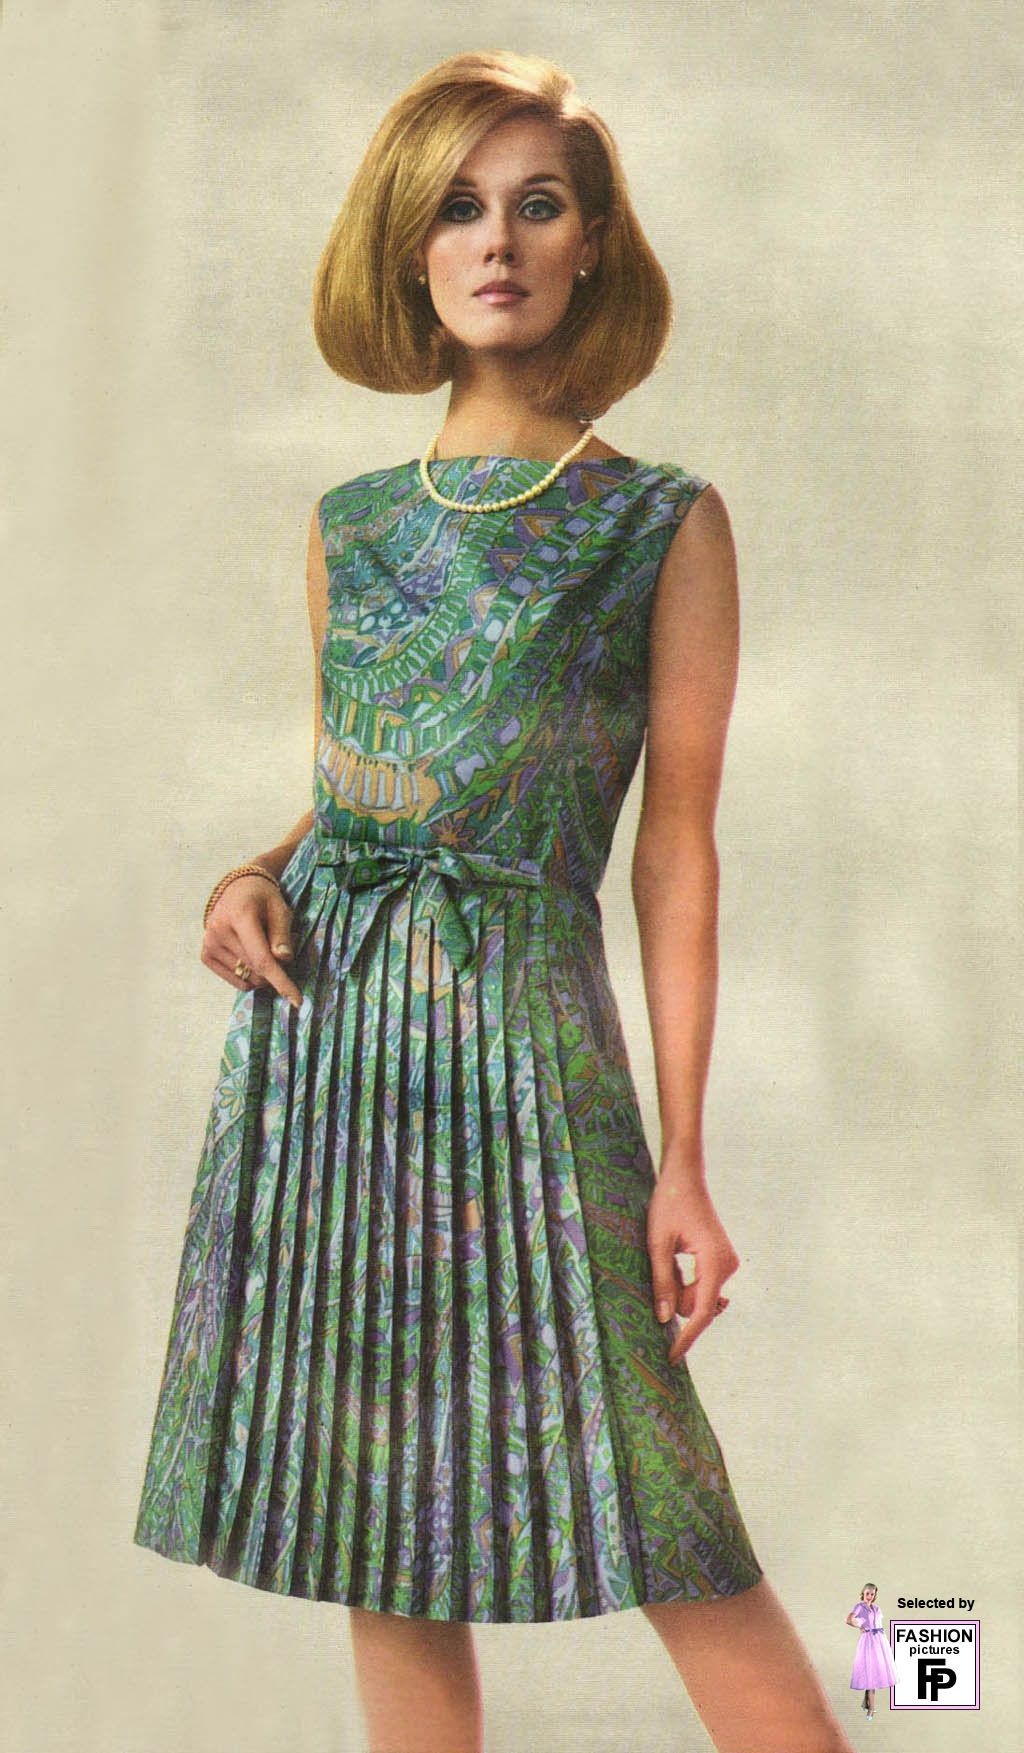 floral graphic print day dress sleeveless blue green pleated